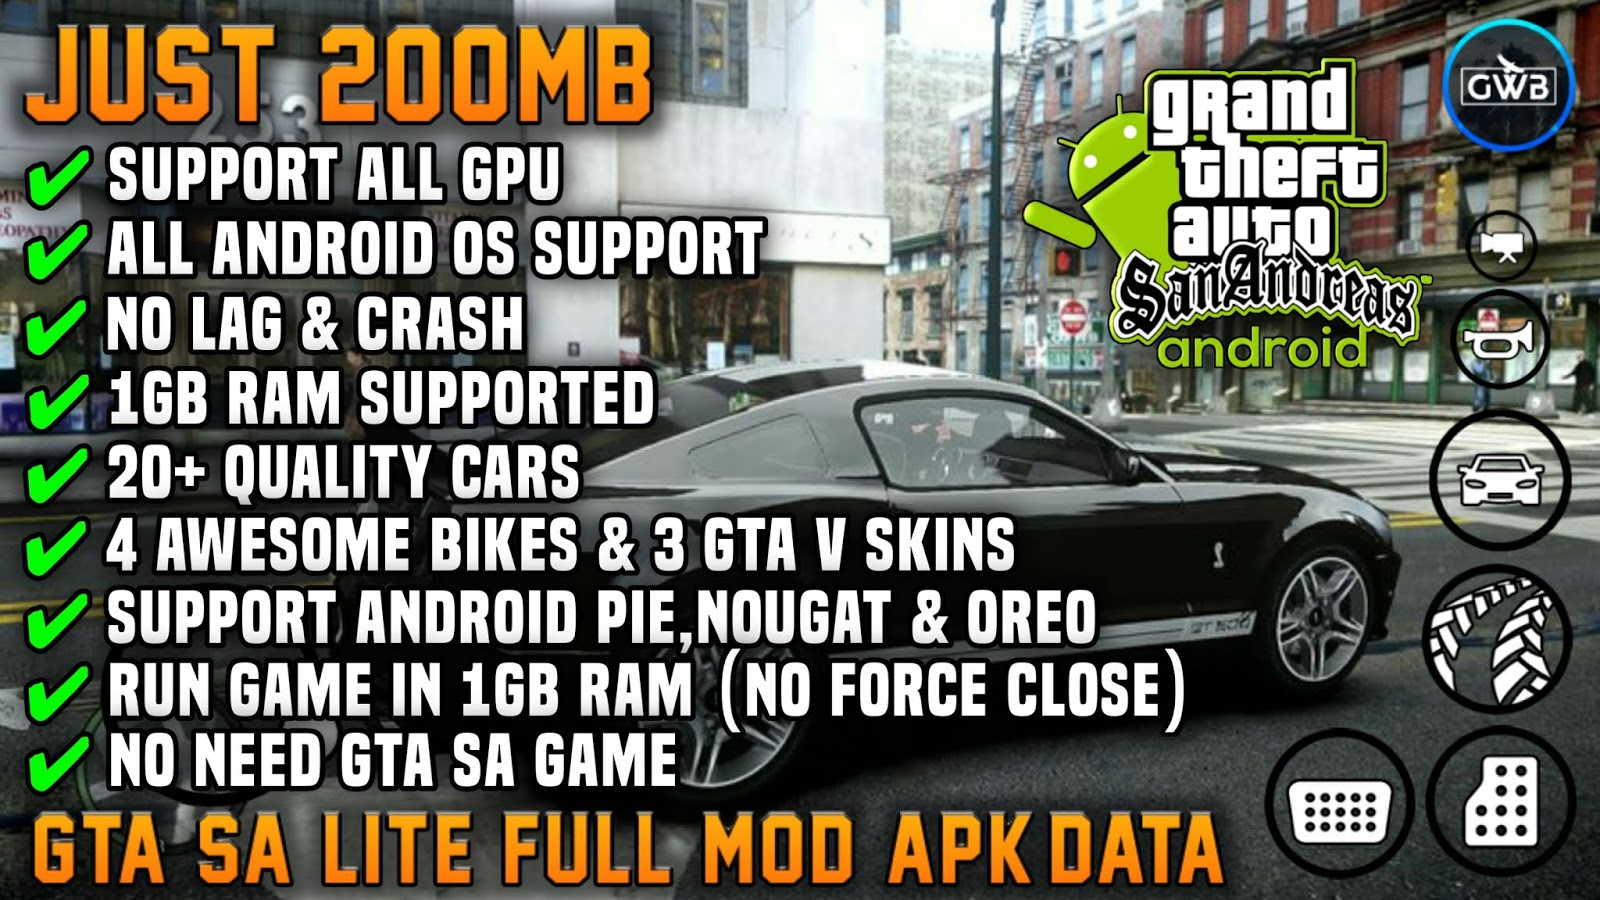 GTA SA LITE FULL MOD RAM 1GB SUPPORT ALL OS ANDROID | JUST